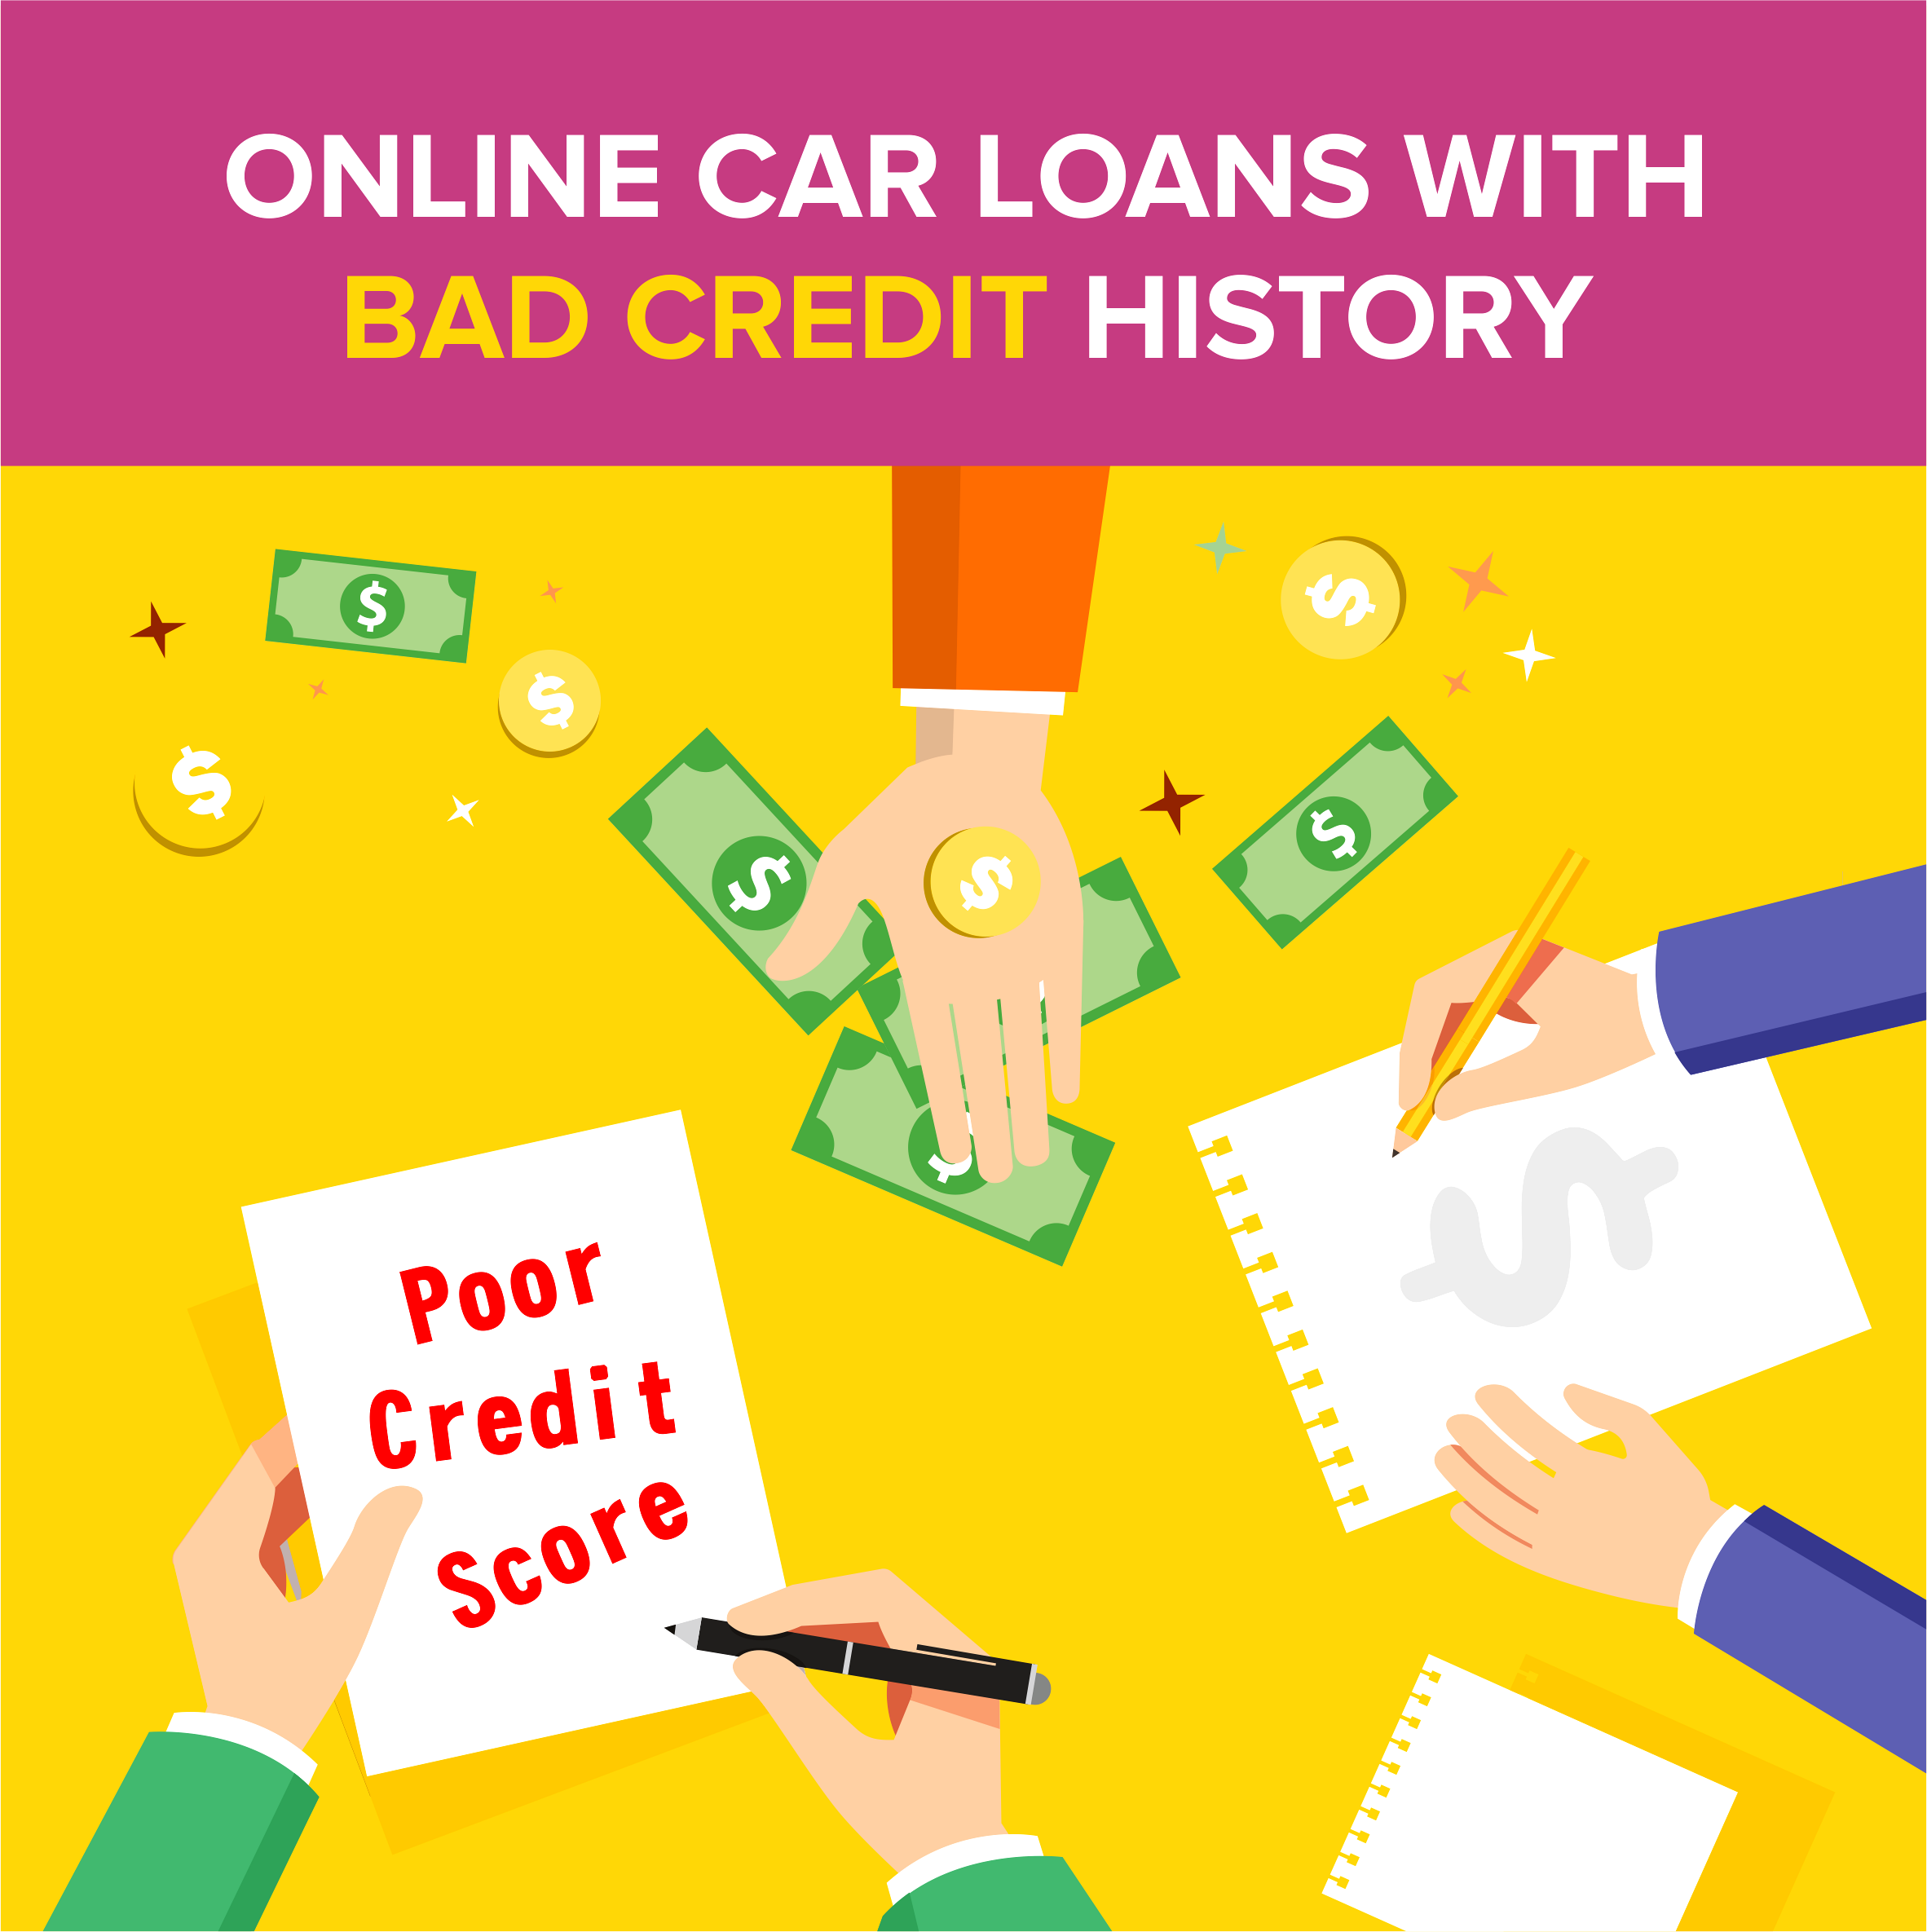 Online Car Loans With Bad Credit History